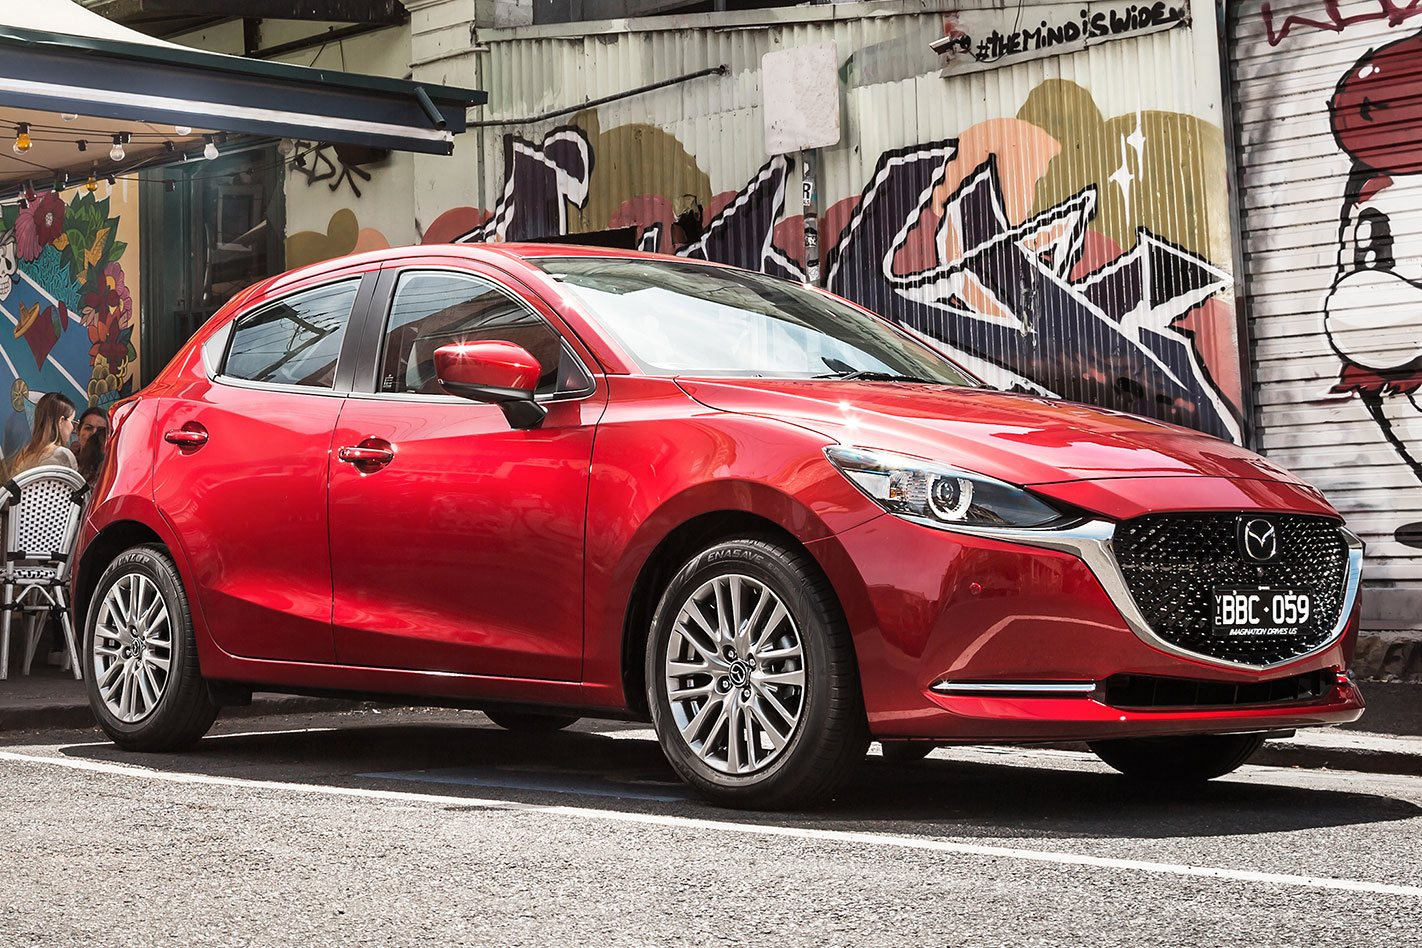 2020 Mazda 2 update price and features revealed